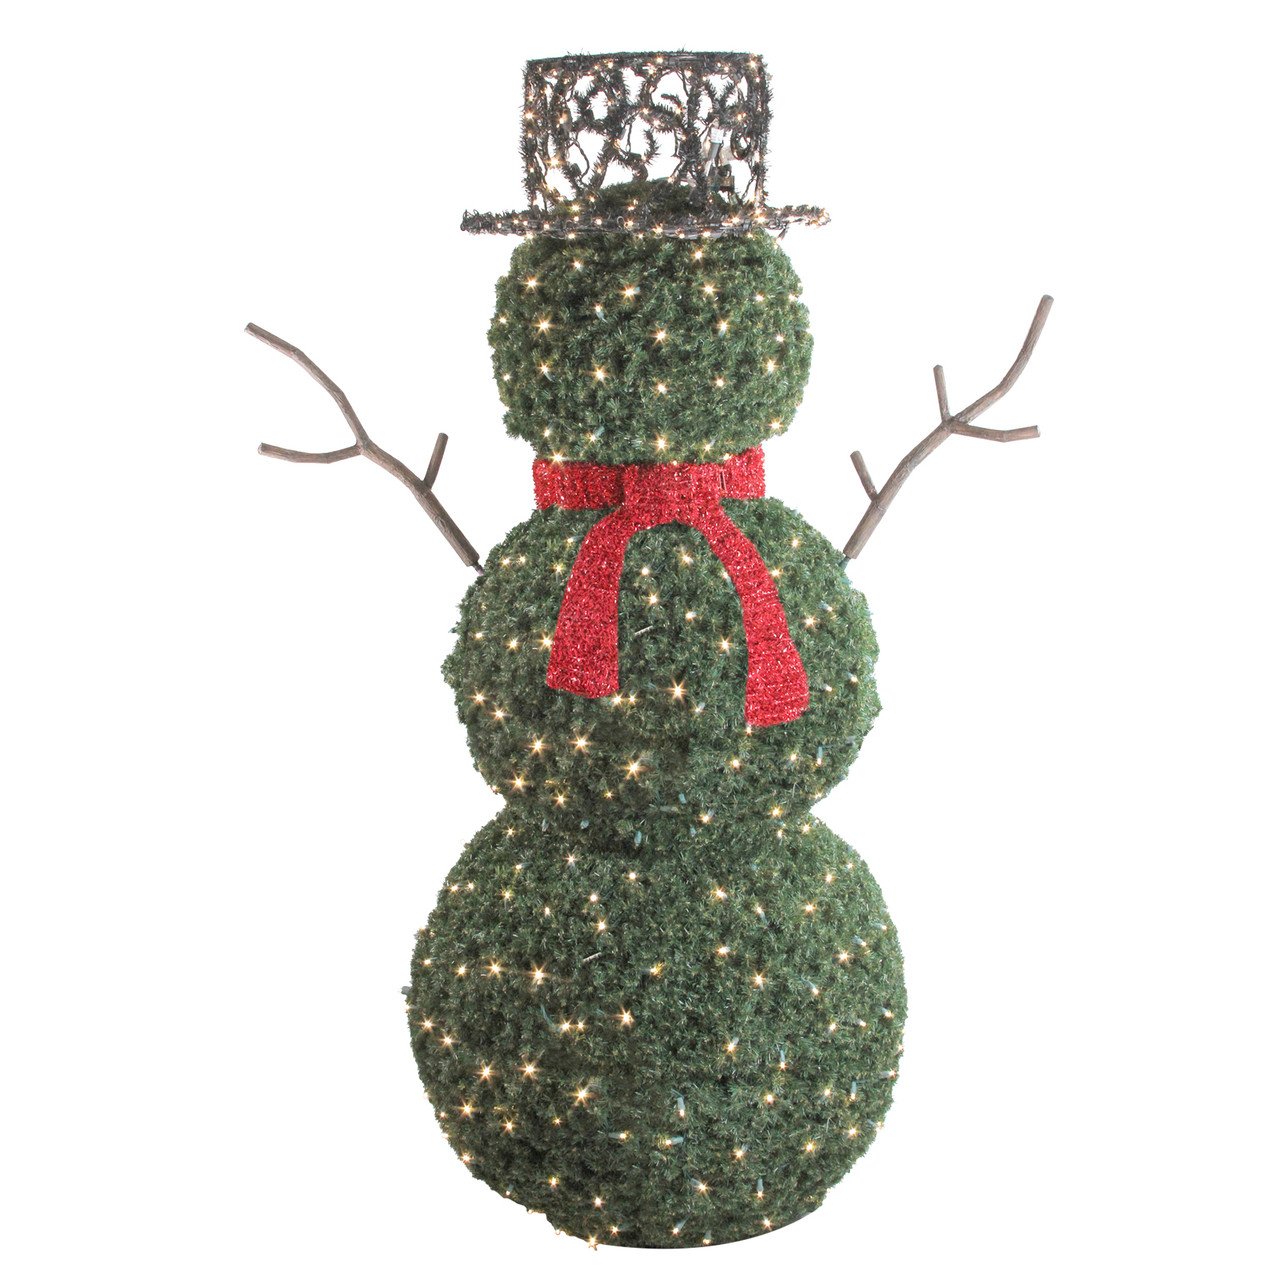 6 5 Giant mercial Grade LED Lighted Snowman Topiary Outdoor Christmas Decoration